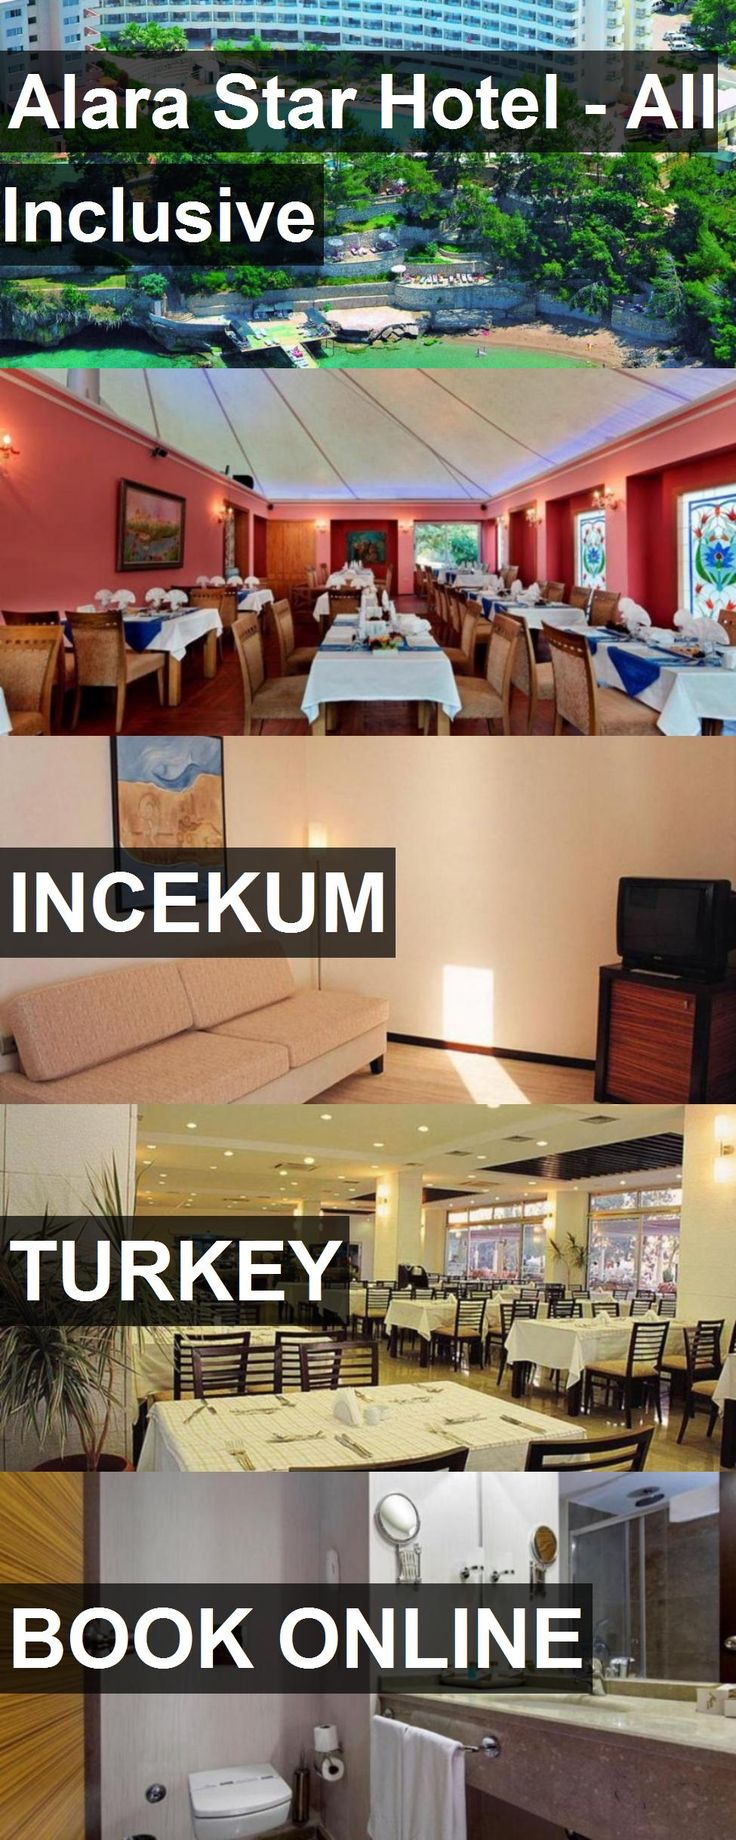 Hotel Alara Star Hotel - All Inclusive in Incekum, Turkey. For more information, photos, reviews and best prices please follow the link. #Turkey #Incekum #AlaraStarHotel-AllInclusive #hotel #travel #vacation